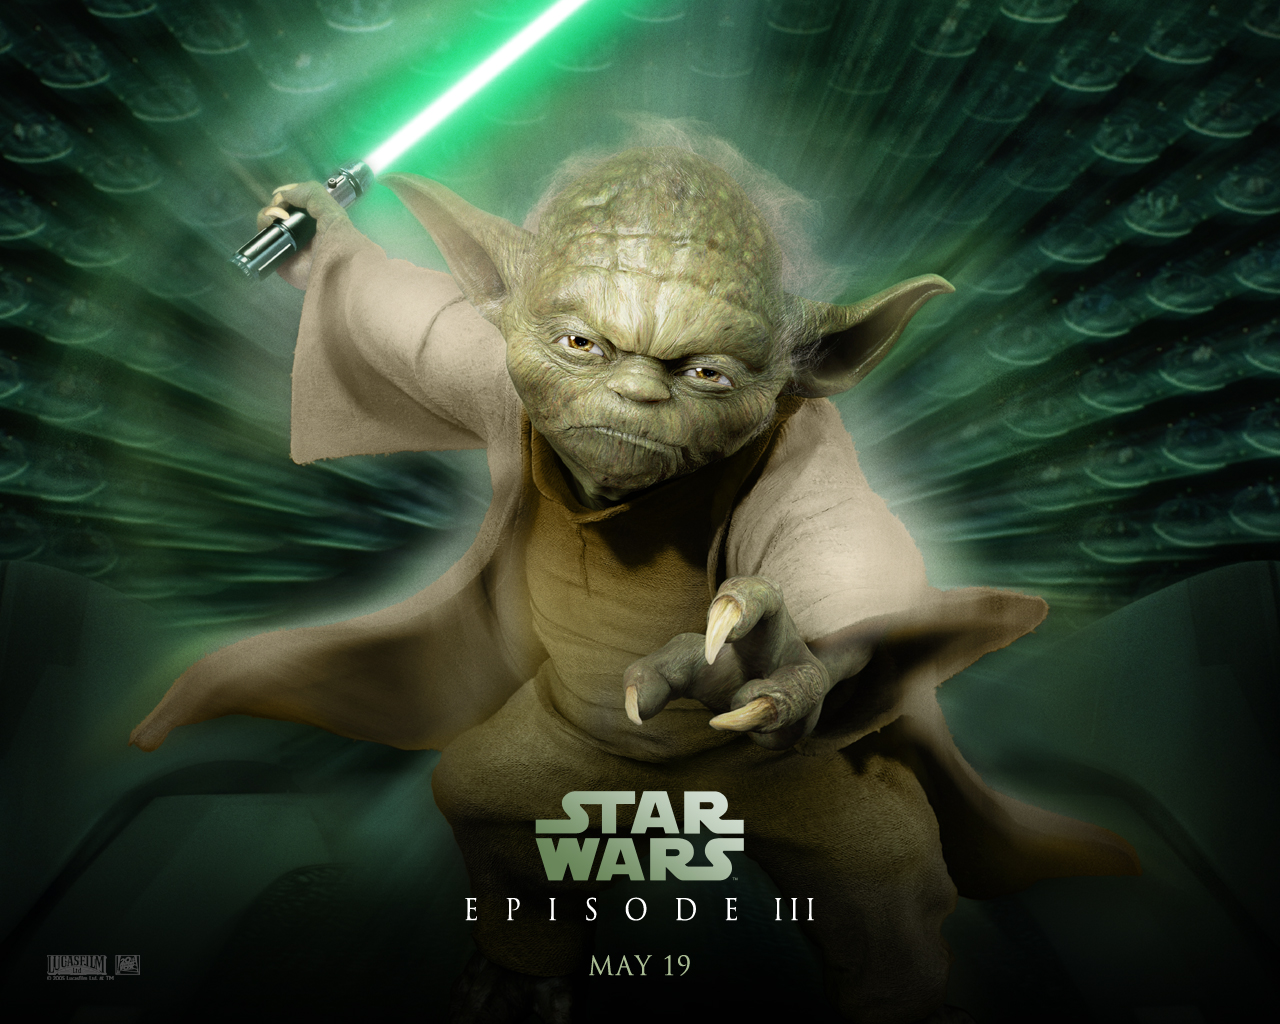 Star Wars Episode 3 Desktop Wallpapers FREE on Latorocom 1280x1024